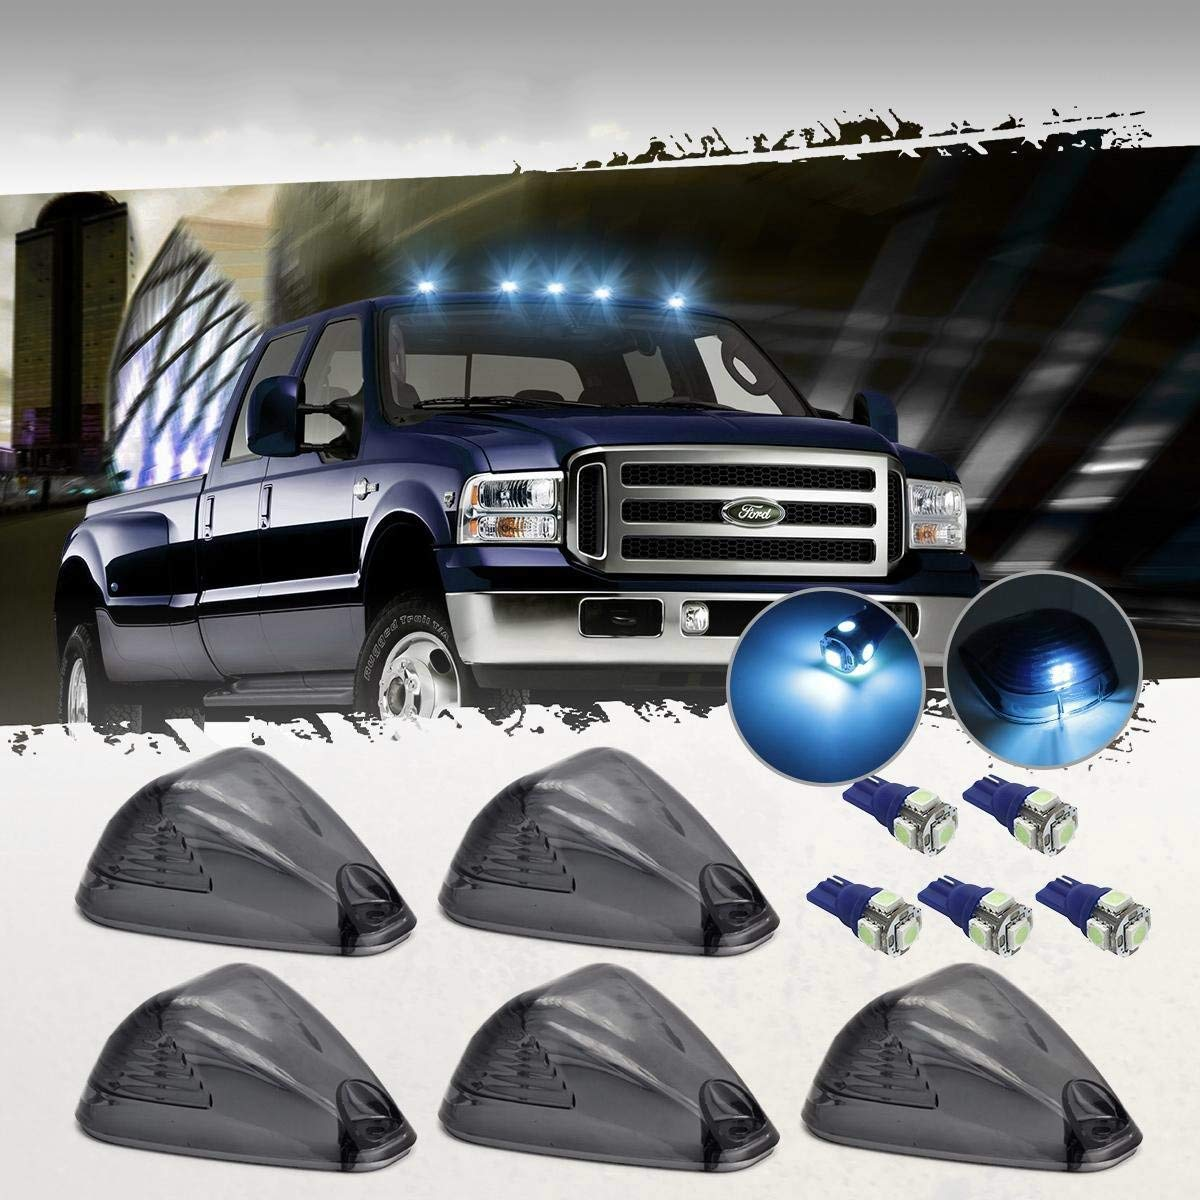 cciyu 5x Black Smoked Cab Roof Top Marker Running Lamps w//Red LED Light Bulbs Replacement fit for Replacement fit ford Super Duty Pickup truck